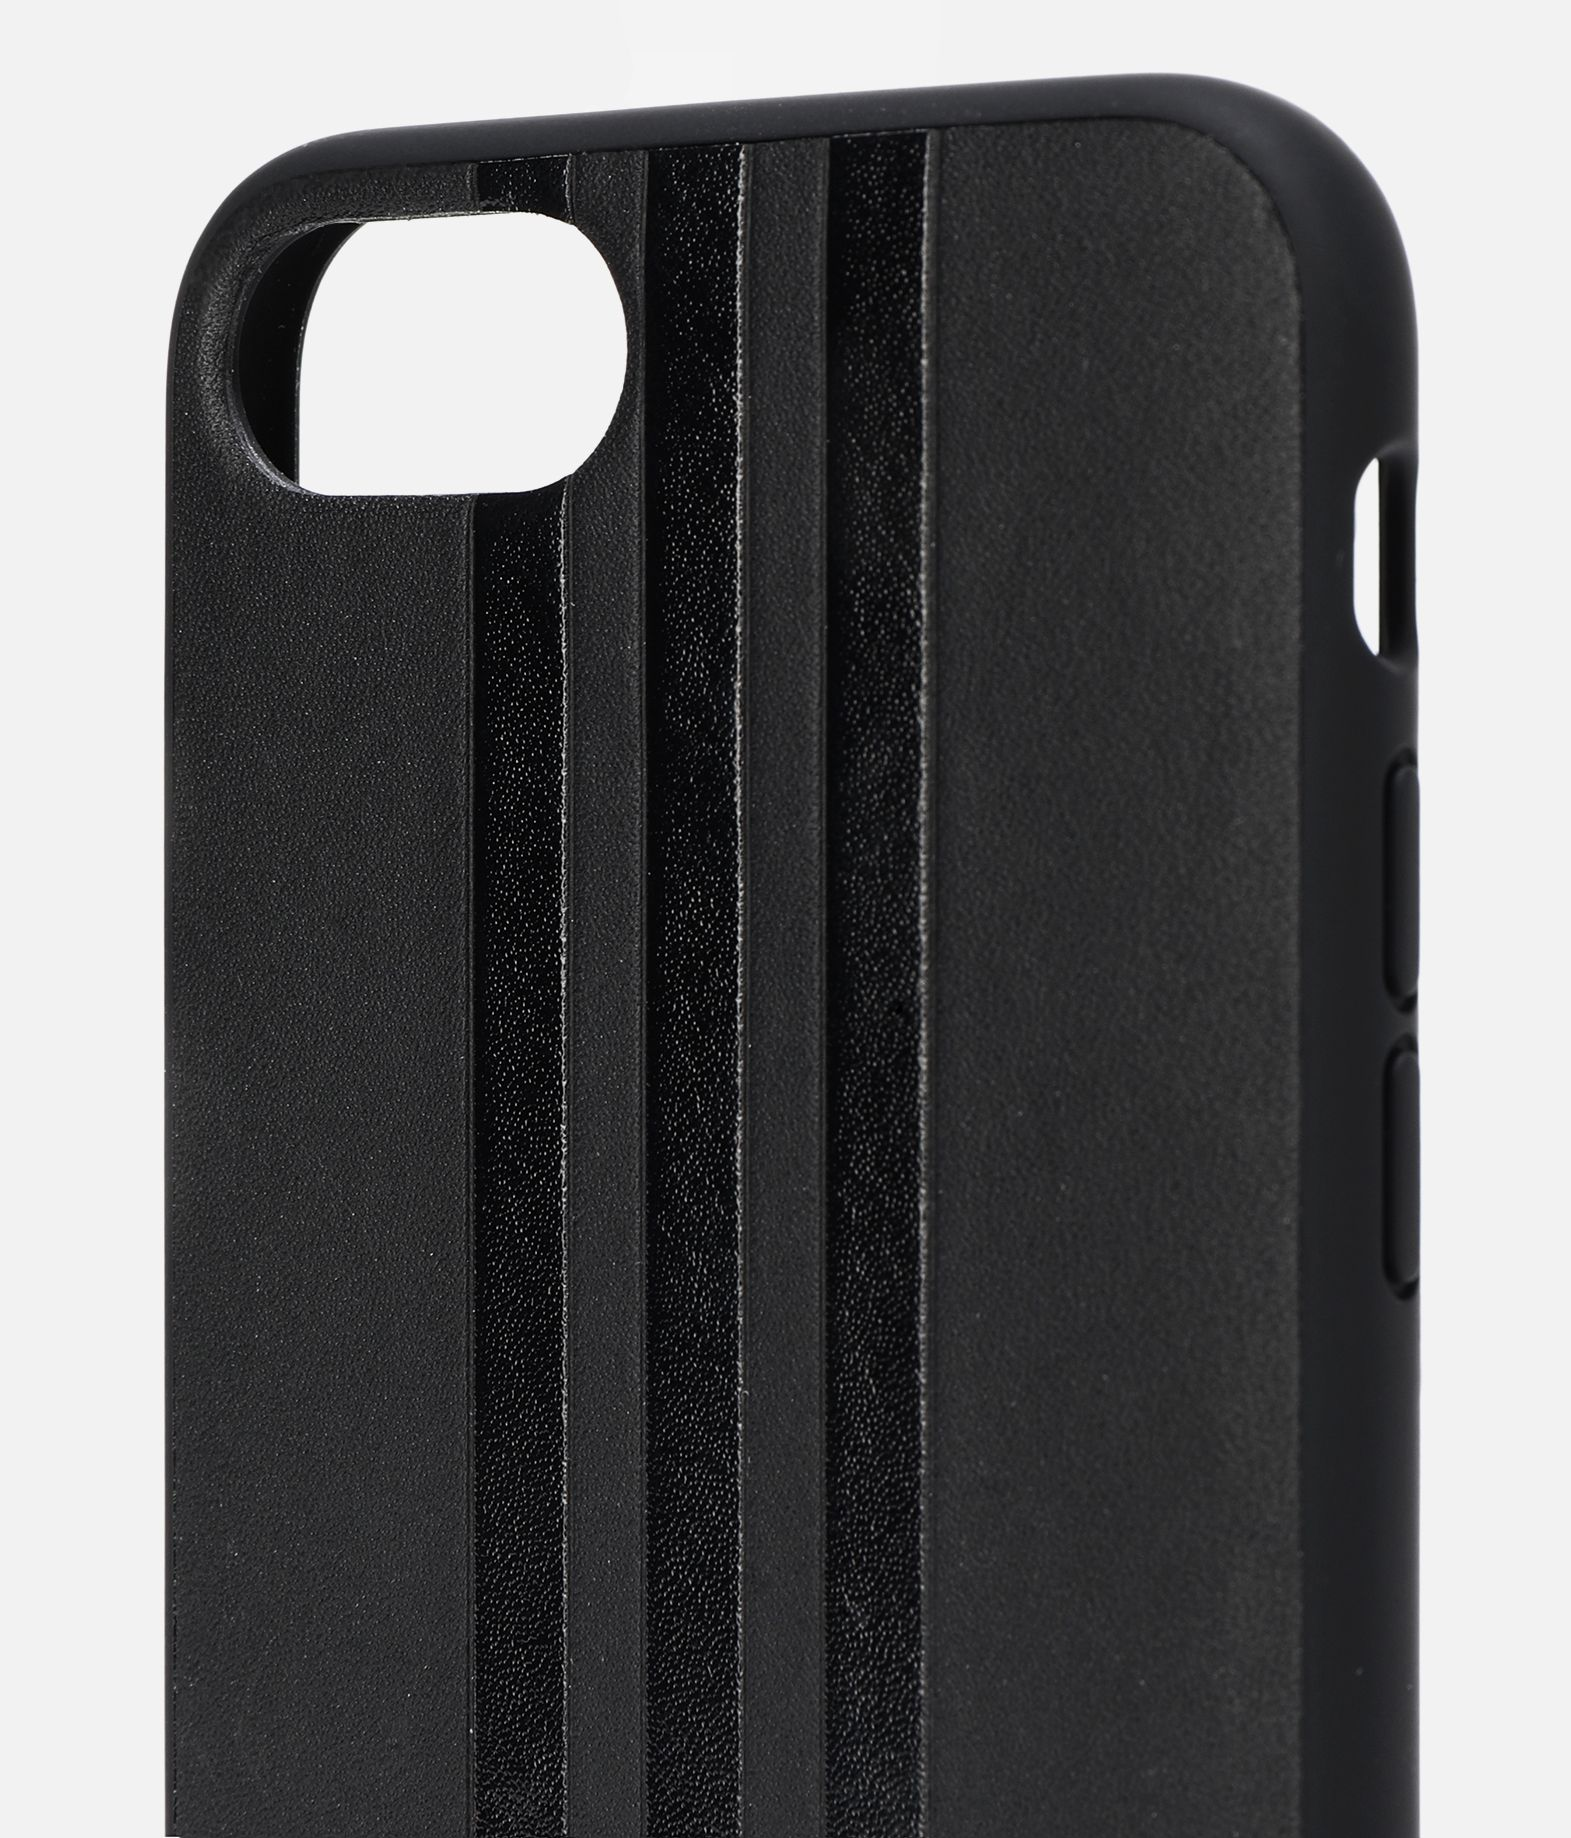 Y-3 Y-3 Moulded Case Leather iPhone 6/6S/7/8 Phone case E d